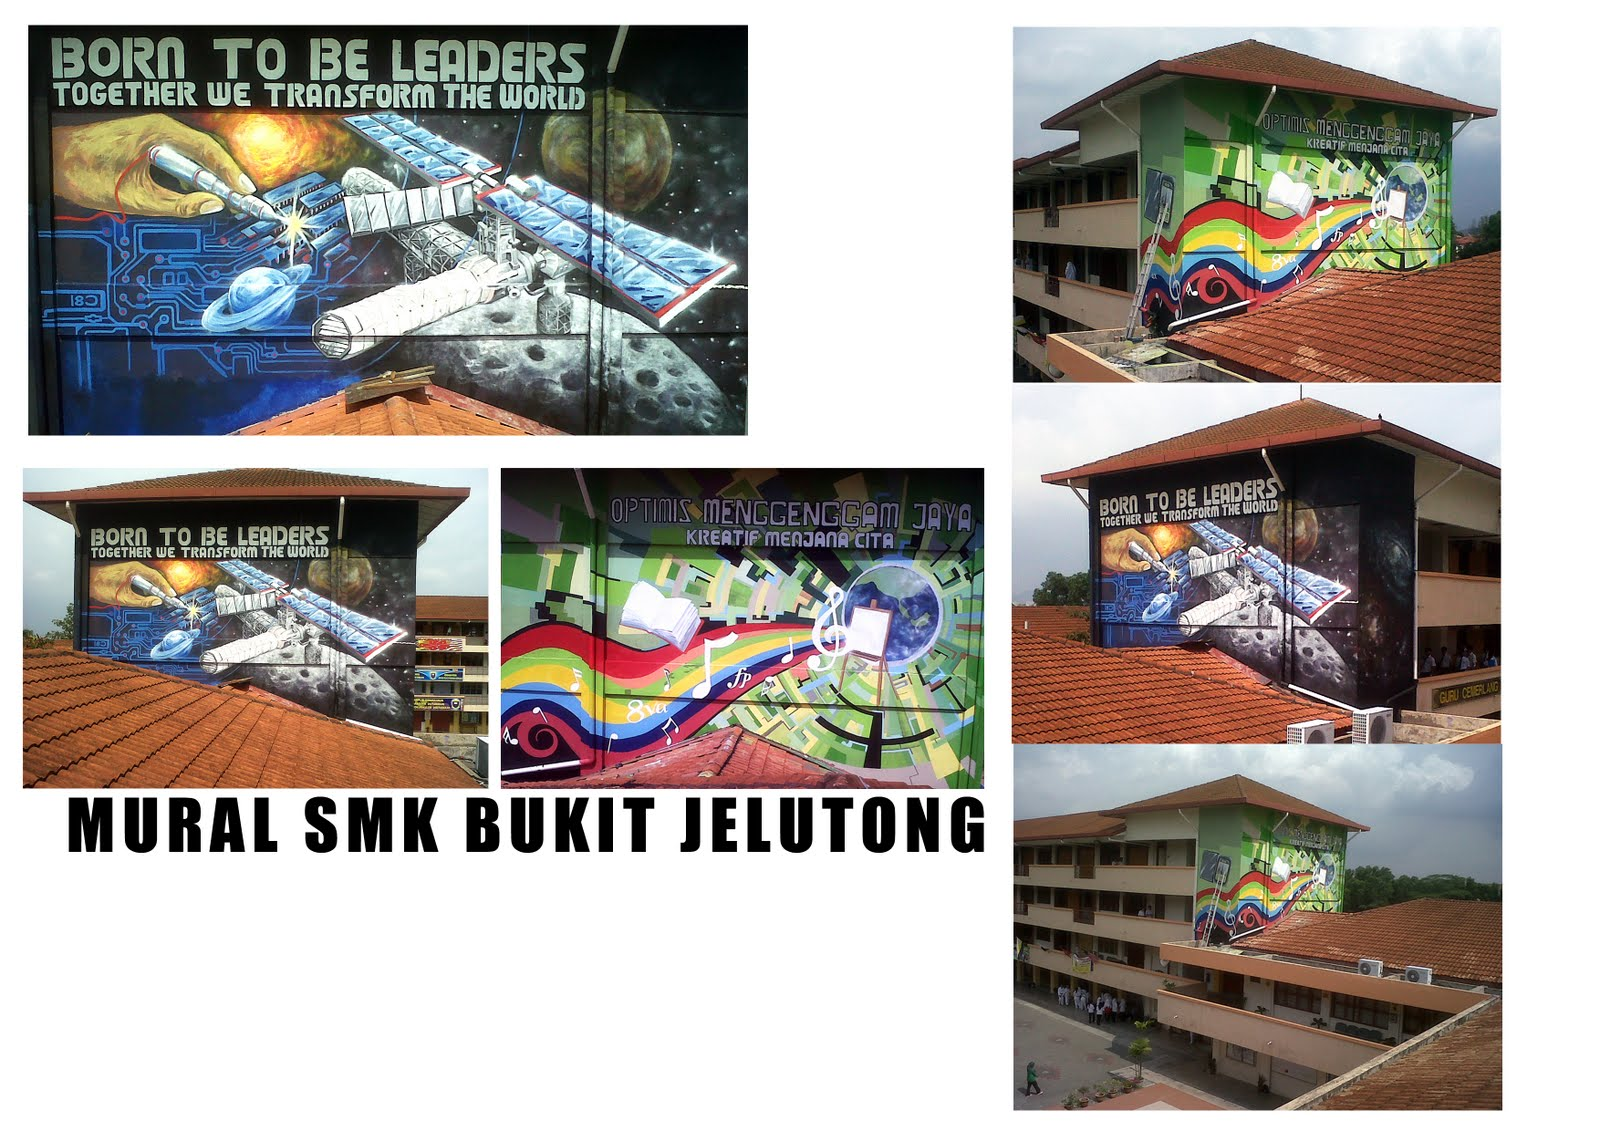 Warna arts may 2011 for Mural sekolah